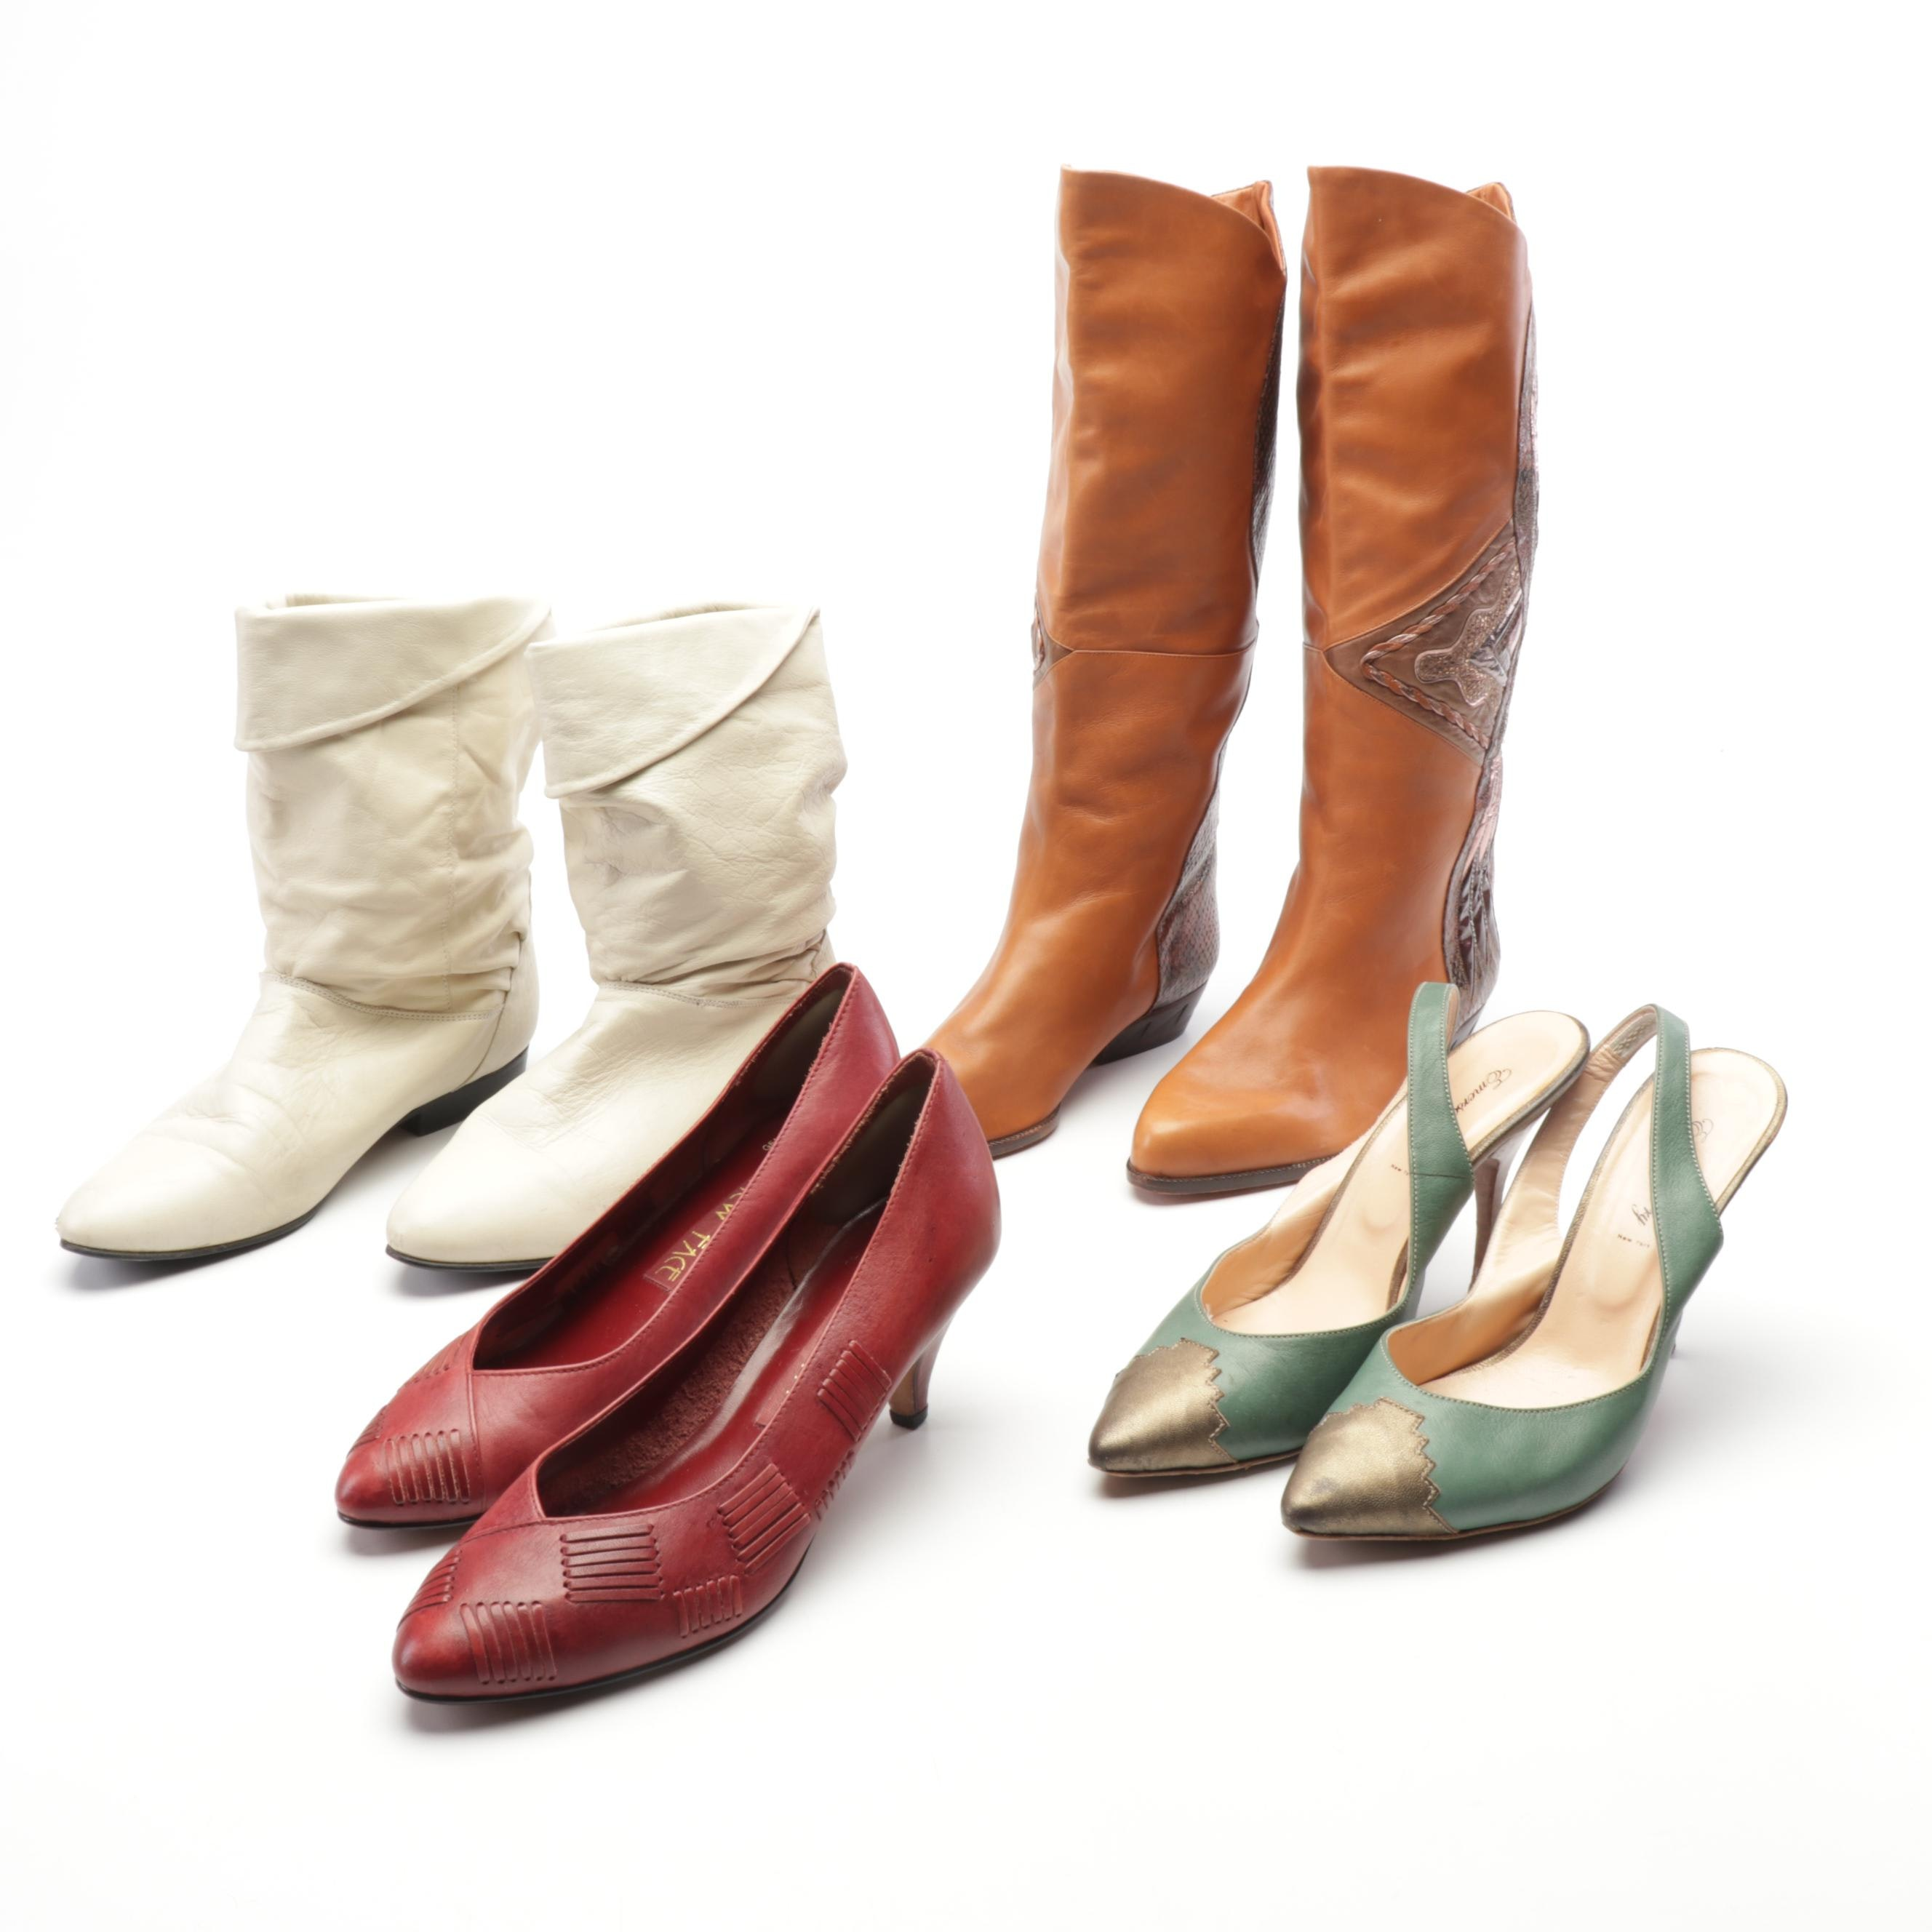 Italian Leather Boots and More, Featuring Emerson Fry High-Heeled Slingbacks